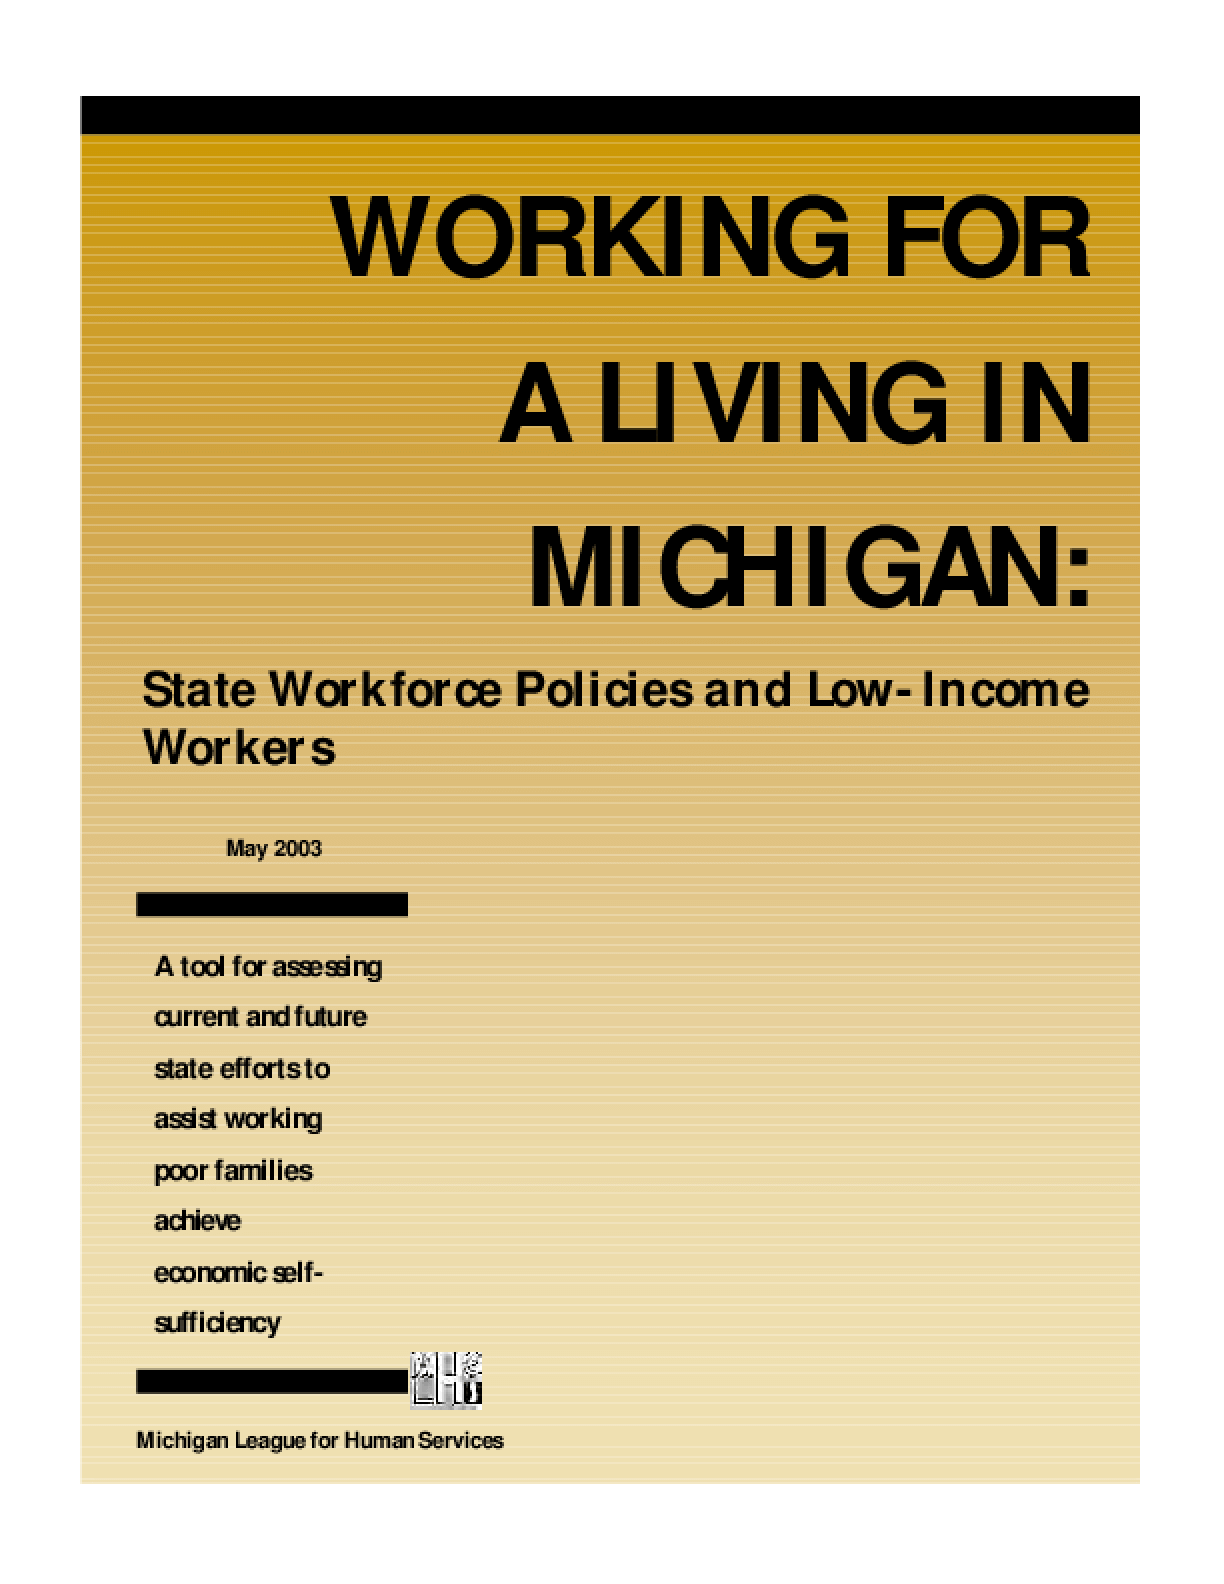 Working for a Living in Michigan: State Workforce Policies and Low-Income Workers